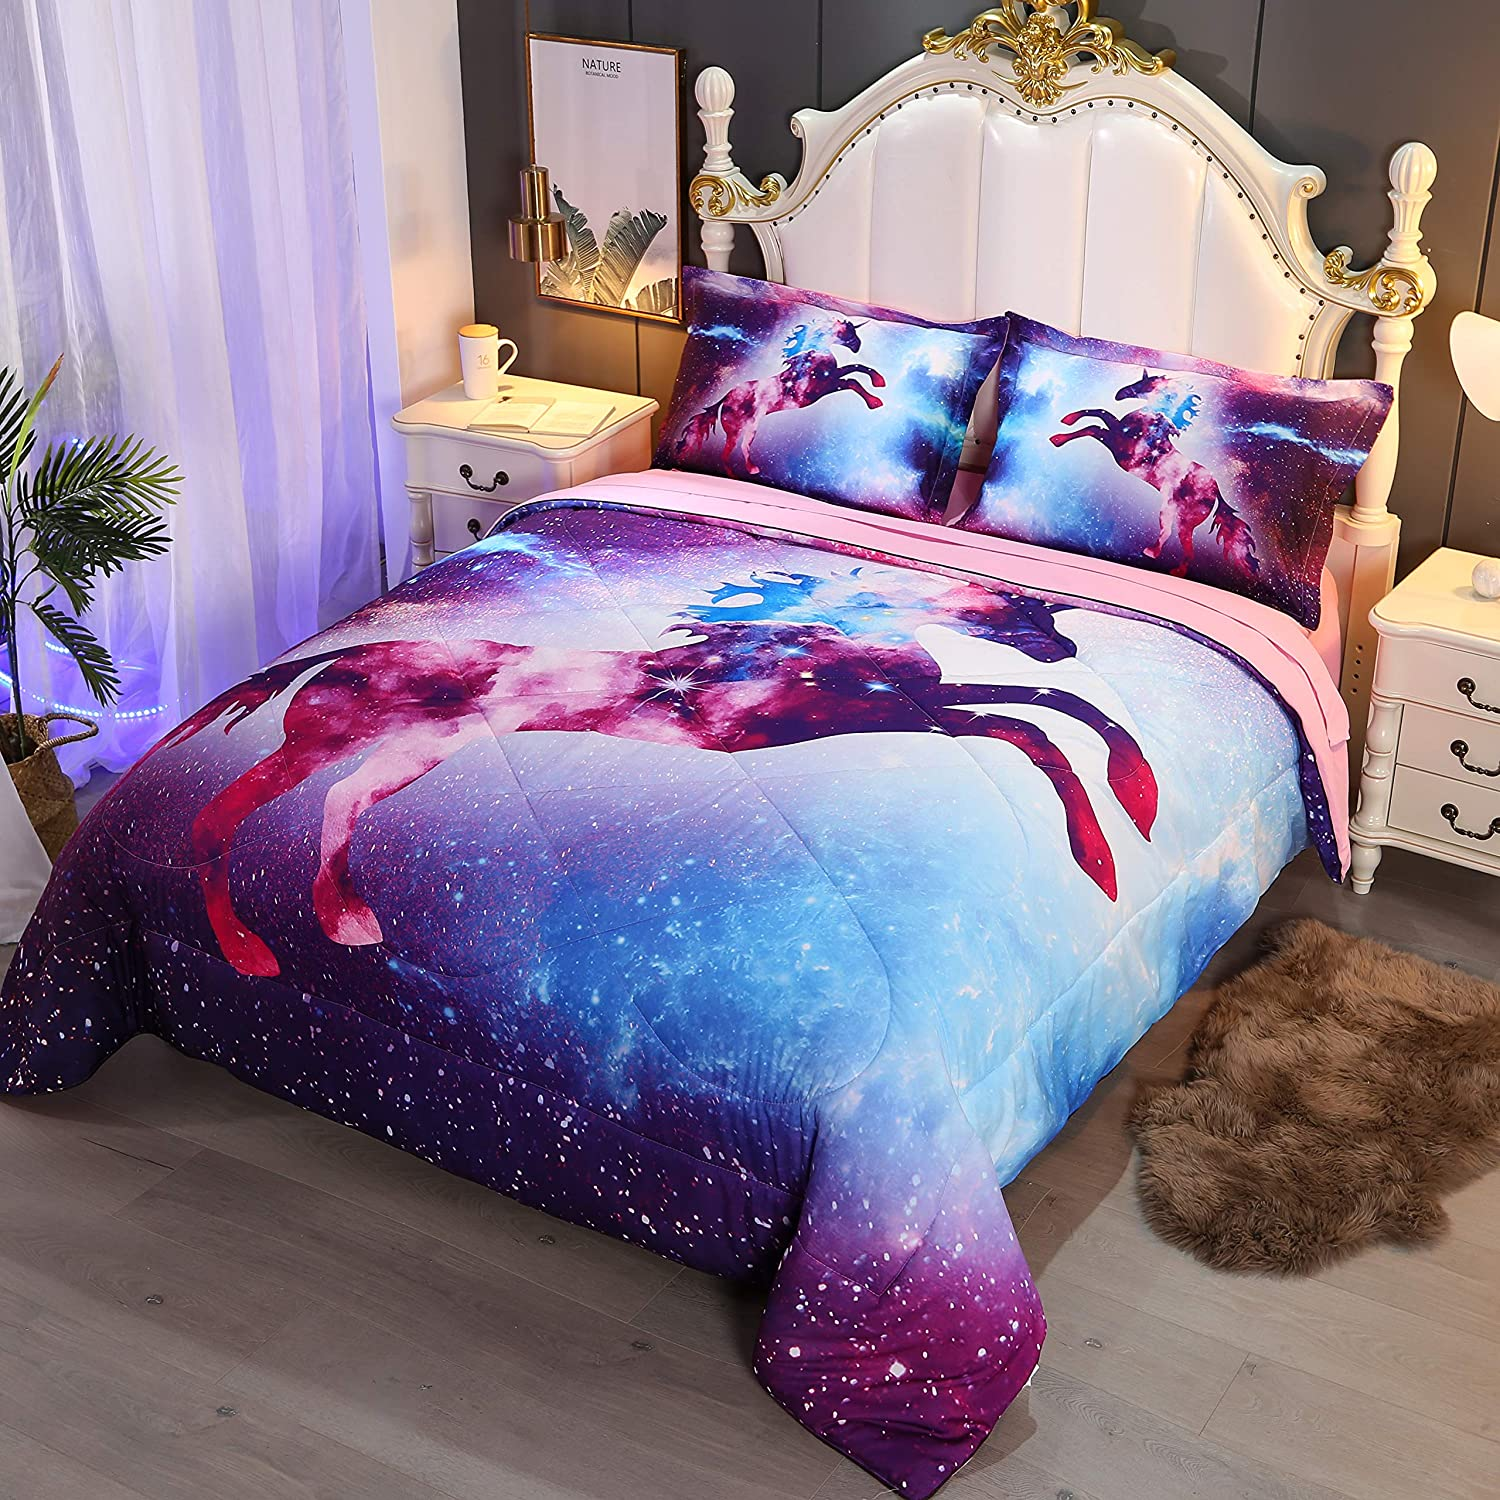 Wowelife Unicorn Duvet Cover Set Full Blue Fly Horse Bedding Set with 1 White Comforter Blue Unicorn-5 Piece, Full Fitted Sheet not Included